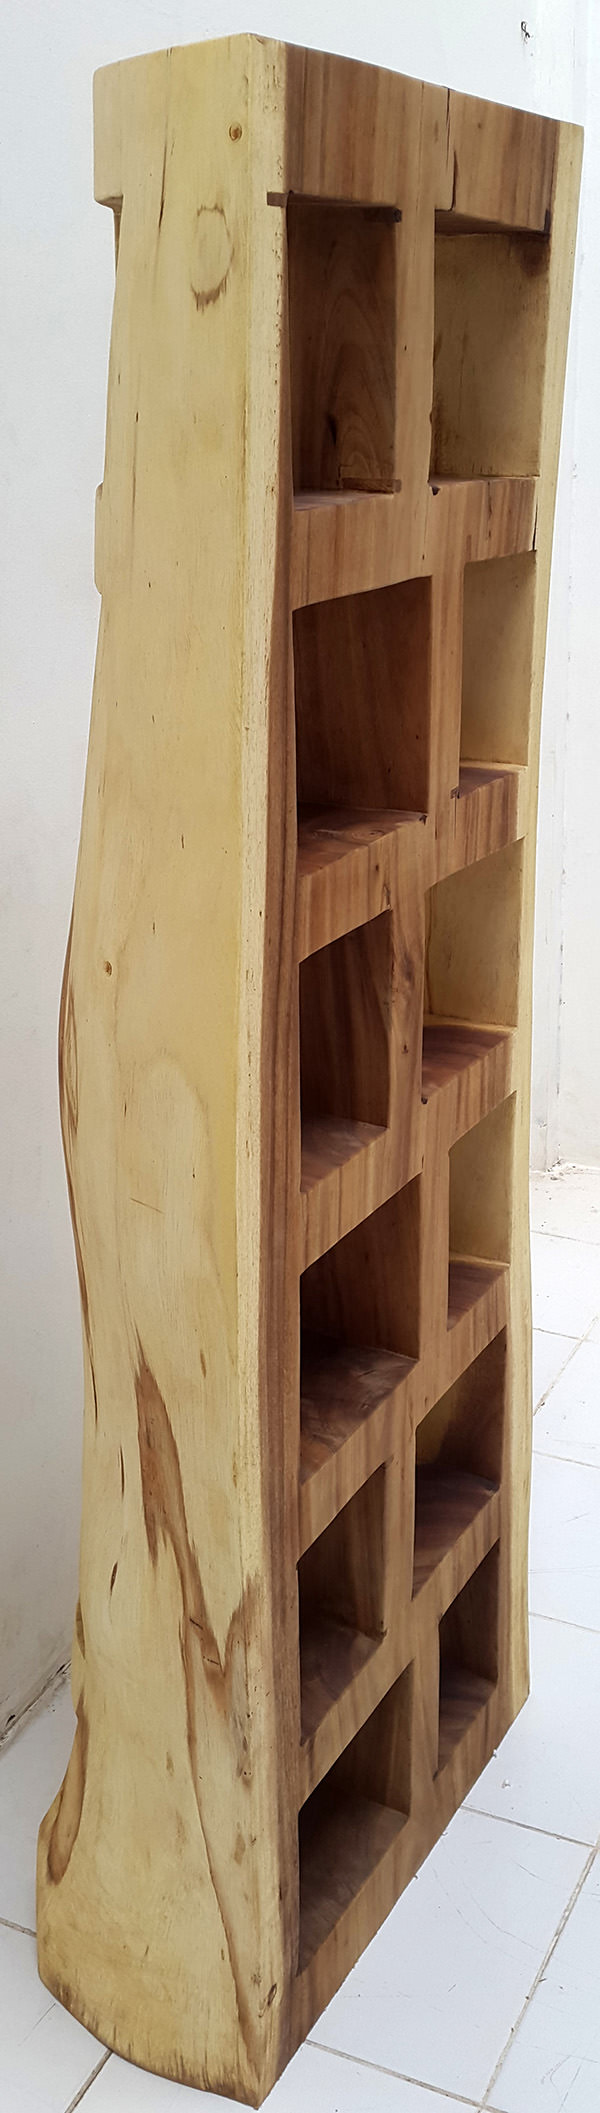 rain tree solid wooden bookcase with organic shapes